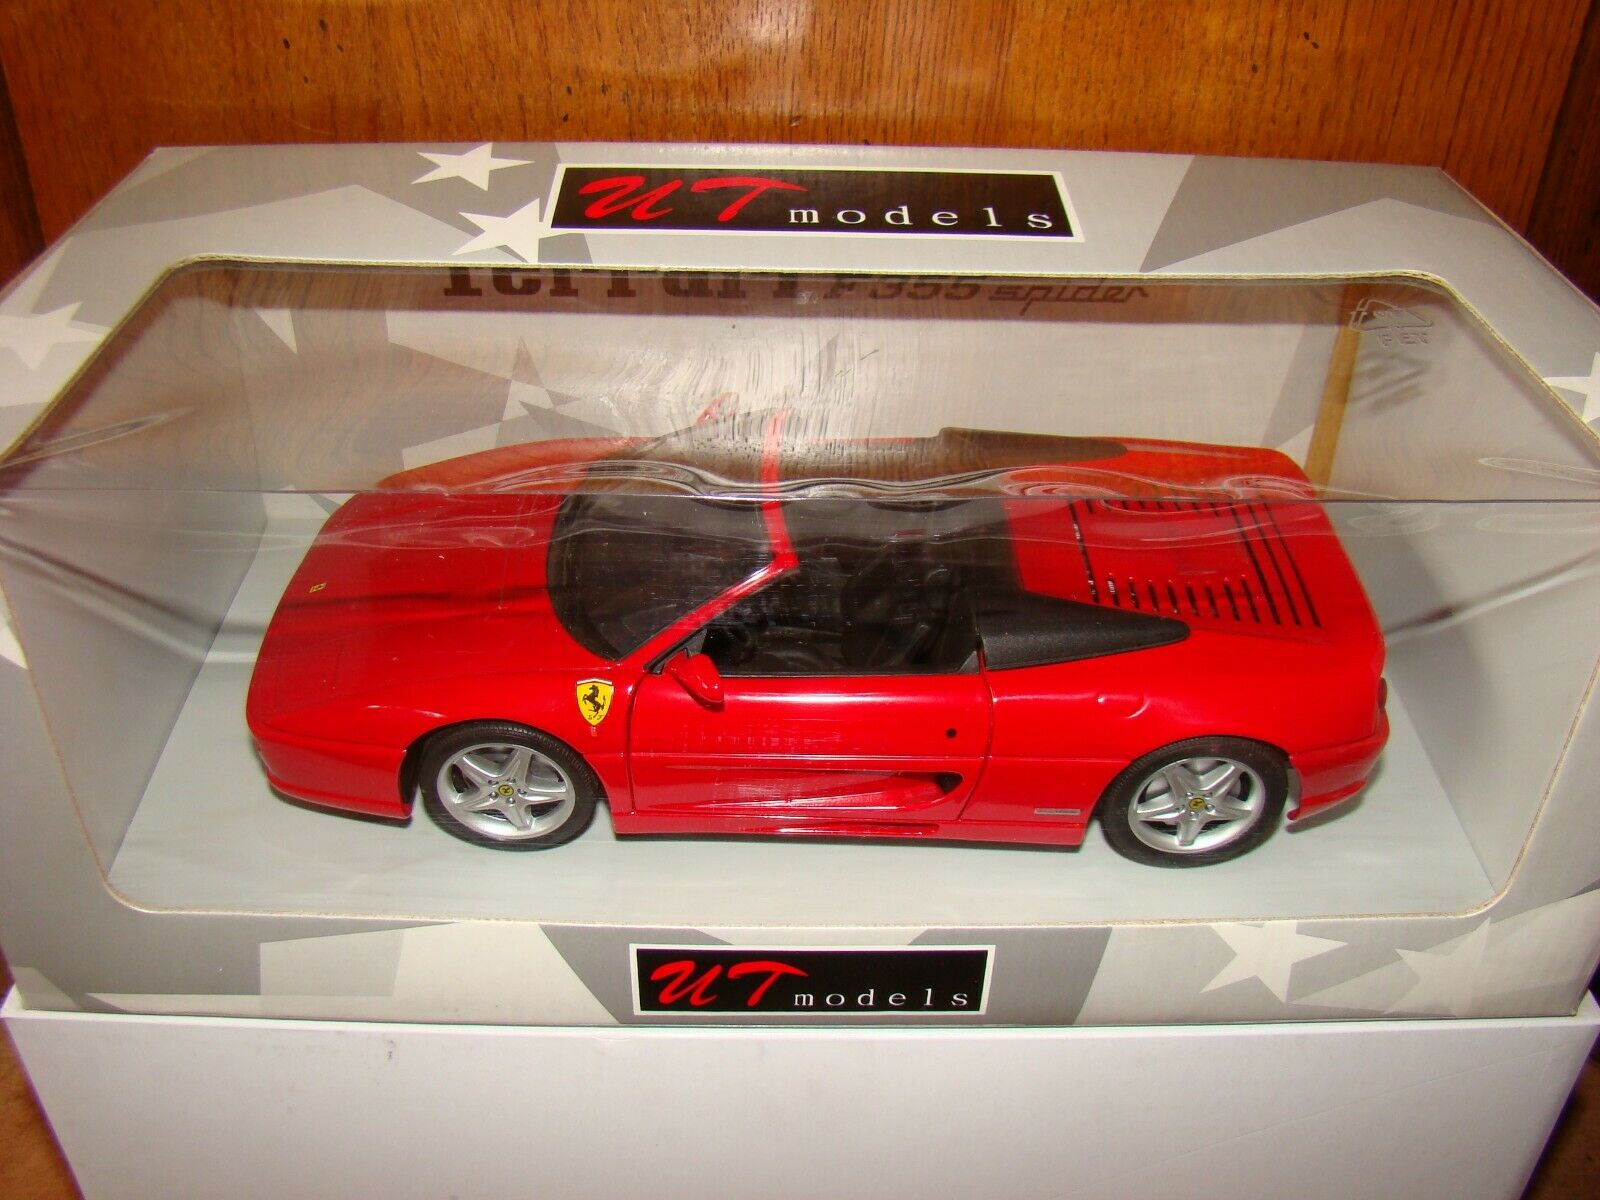 FERRARI 355 SPIDER UT MODELS   ROUGE   ECHELLE 1 18 EME  SOLD OUT SUPERBE  RARE